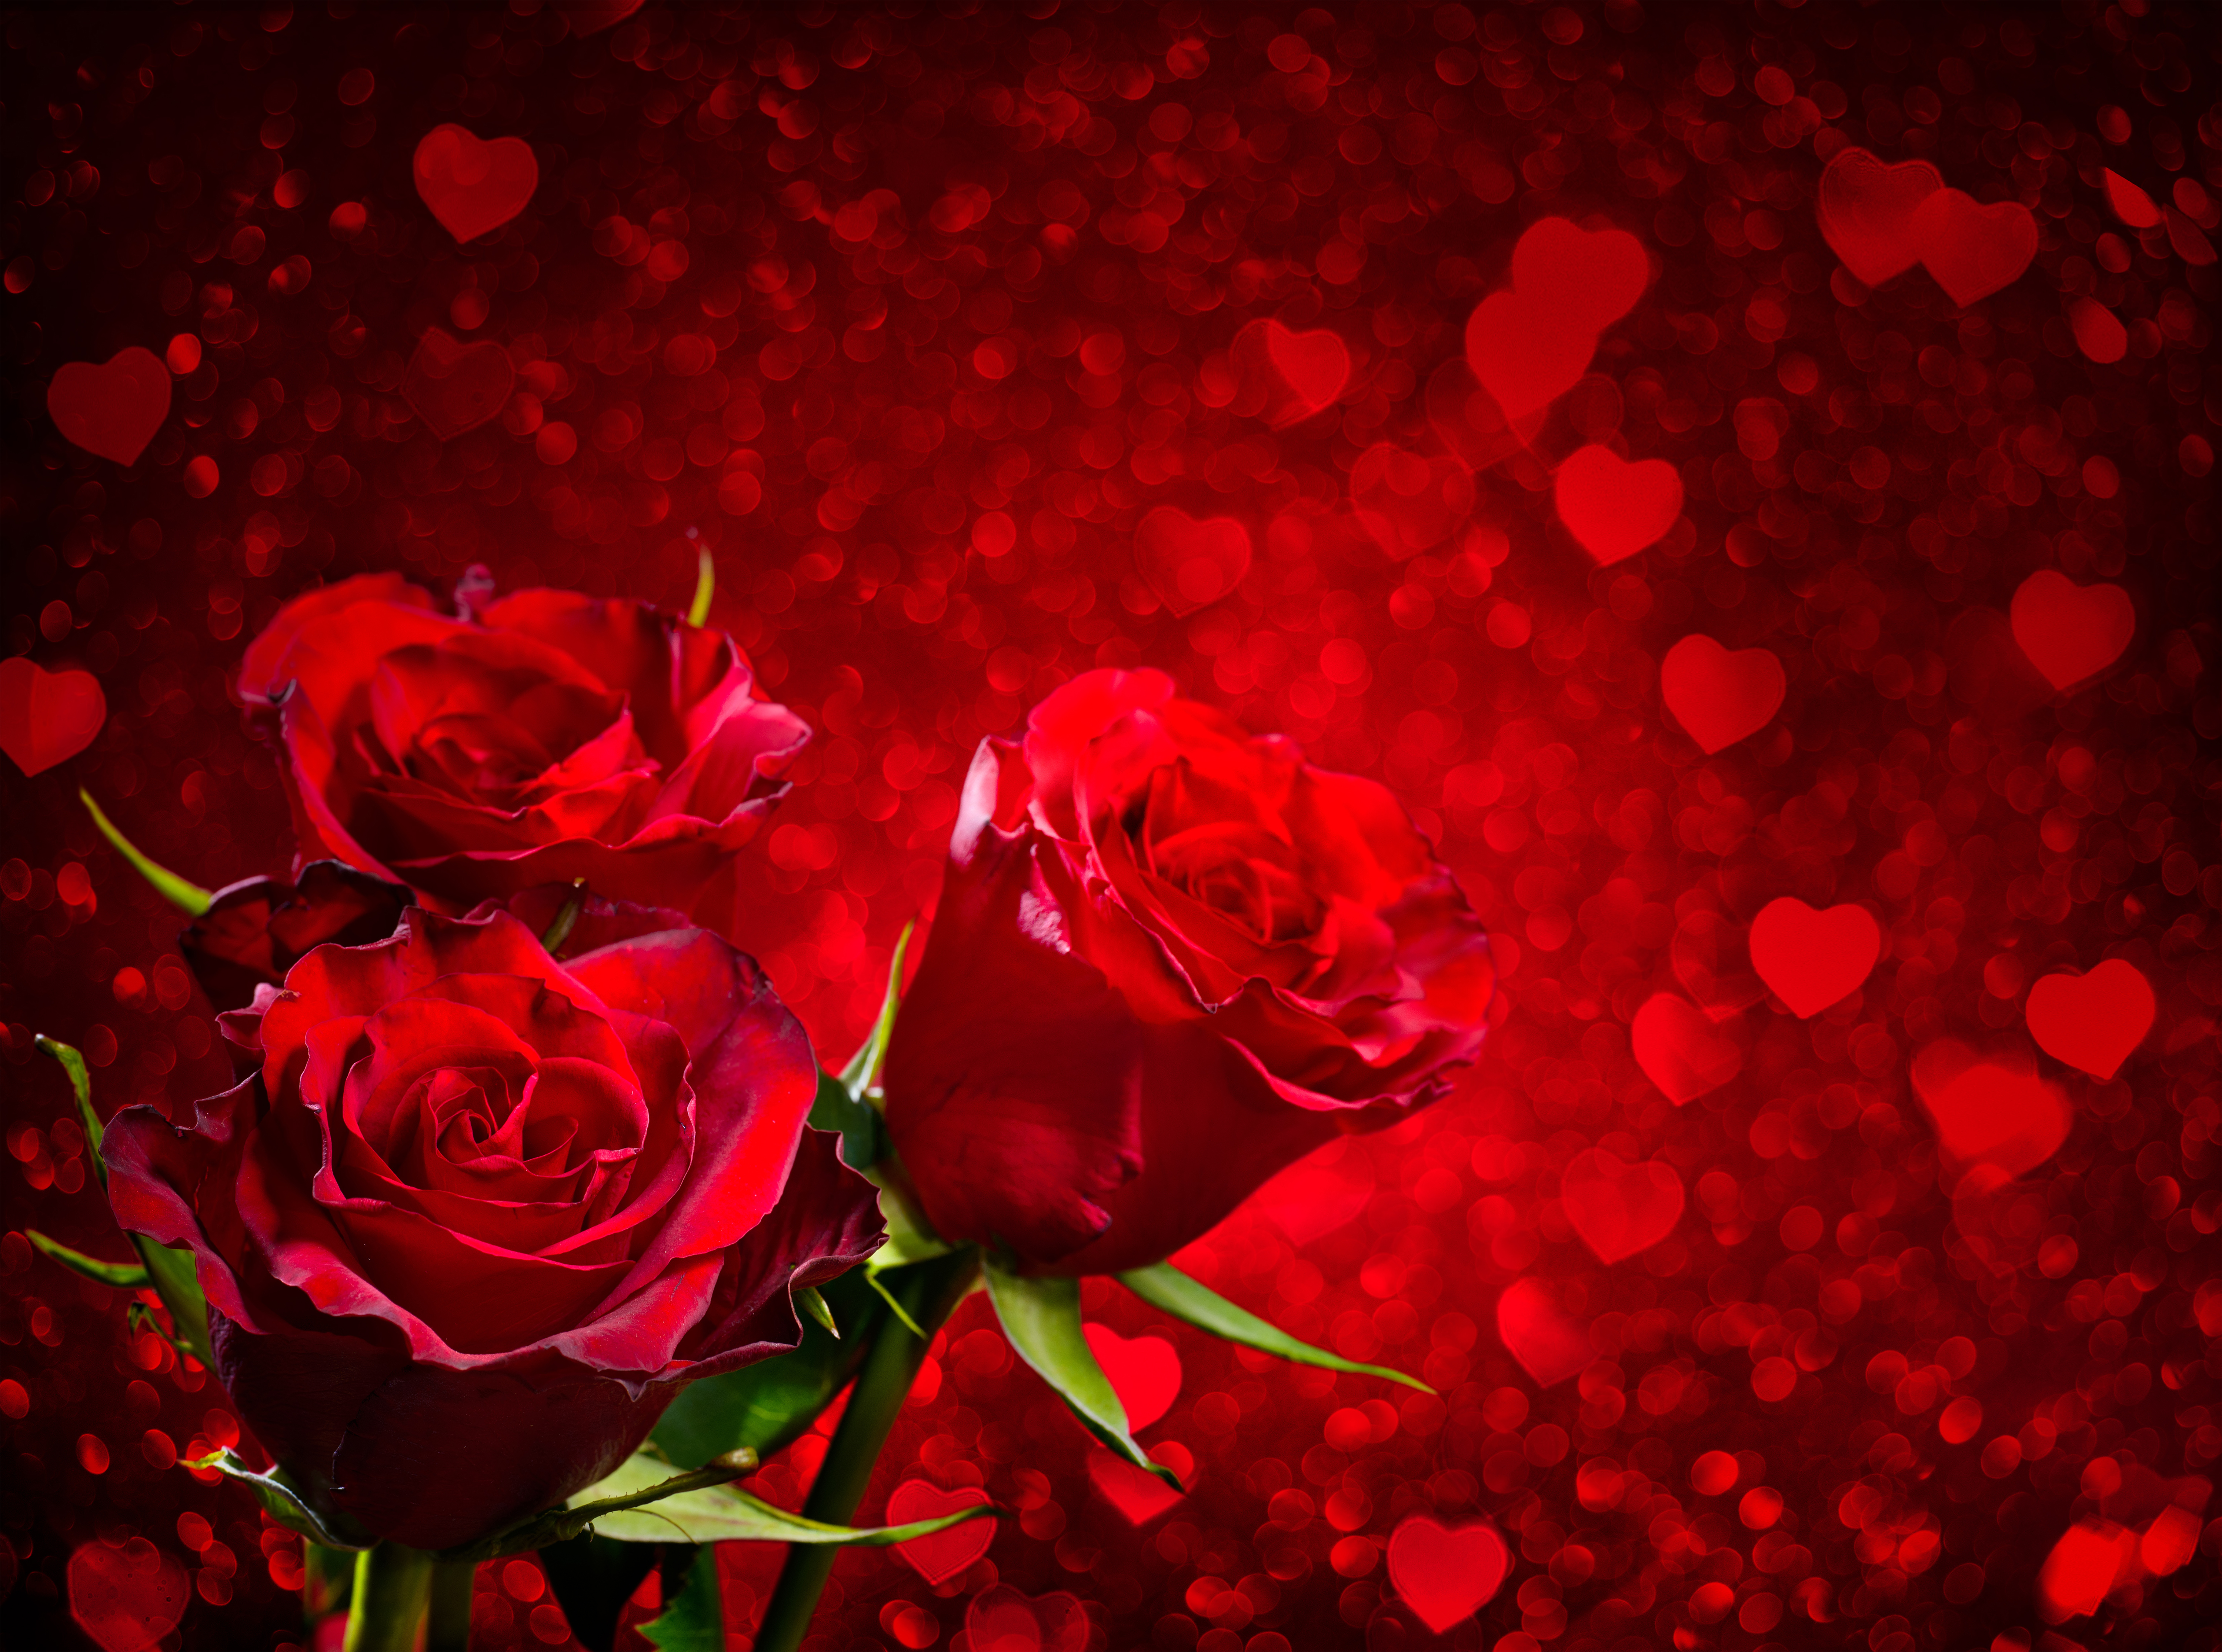 Rose Petals Falling Wallpaper Transparent Gif Red Roses And Hearts Background Gallery Yopriceville